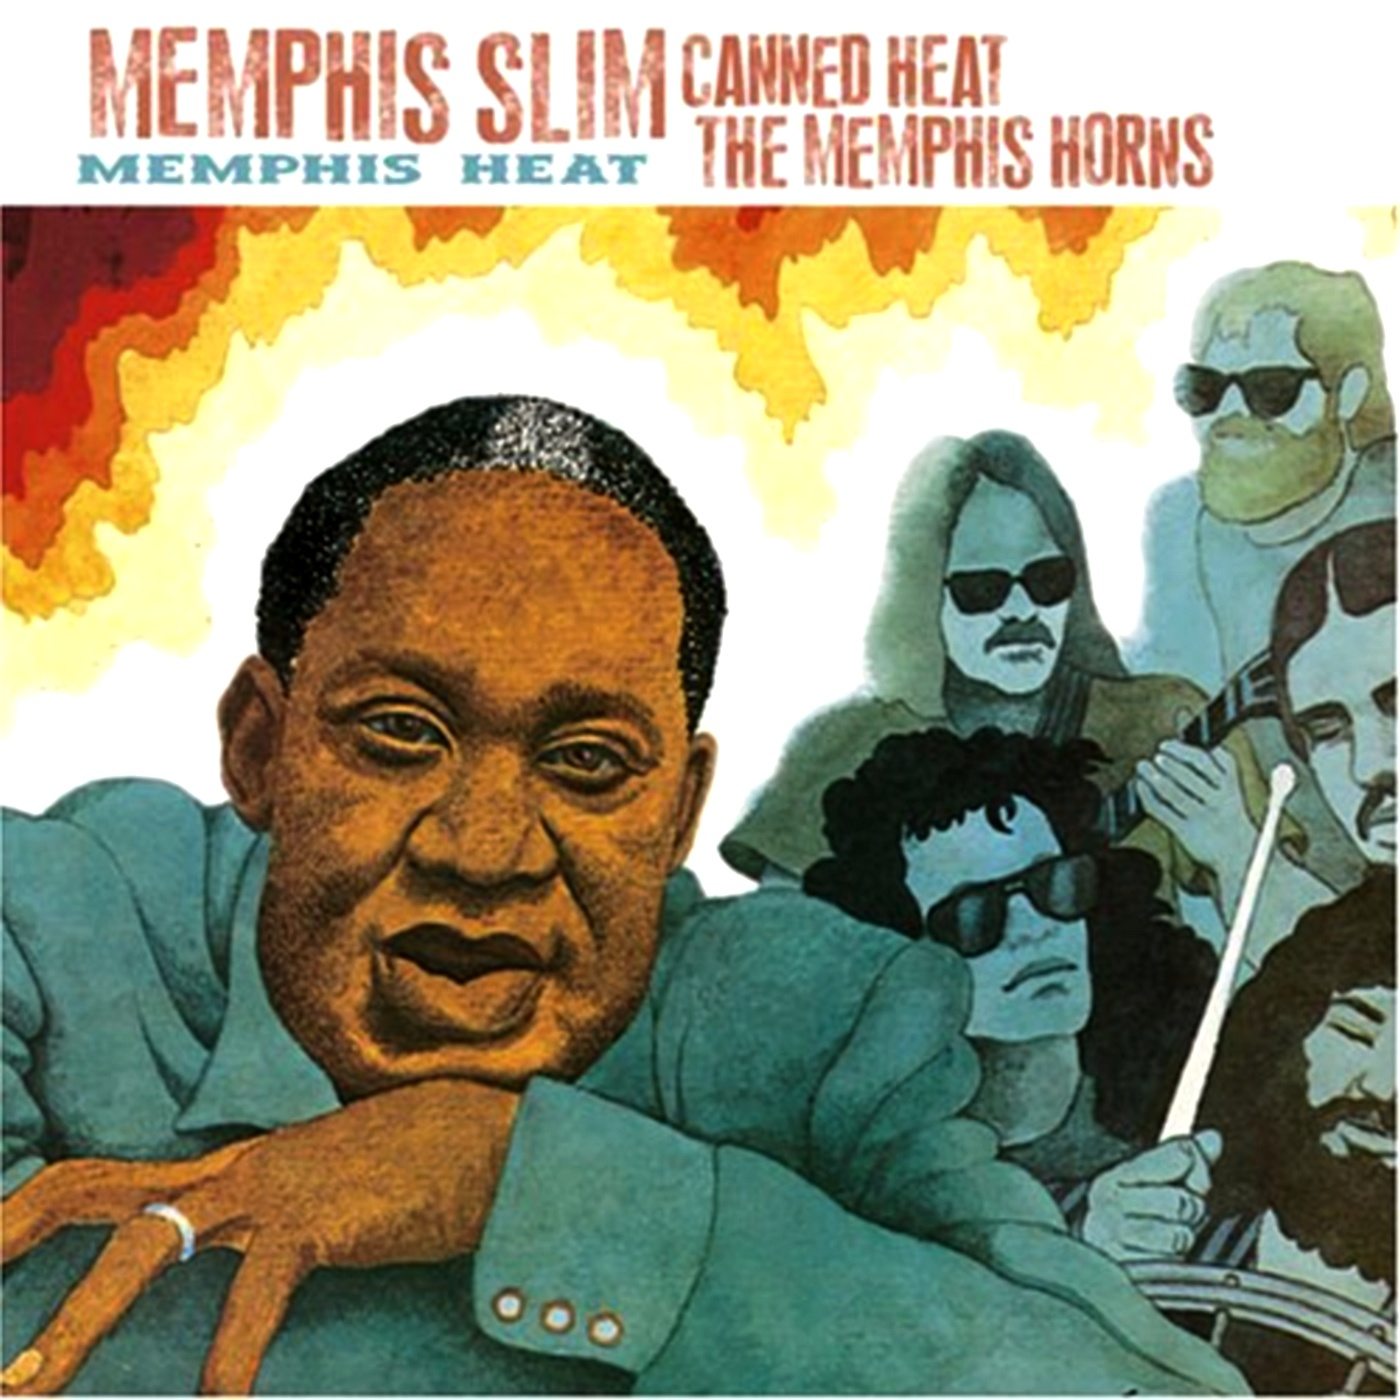 Canned Heat and Memphis Slim - Memphis Heat (1973)